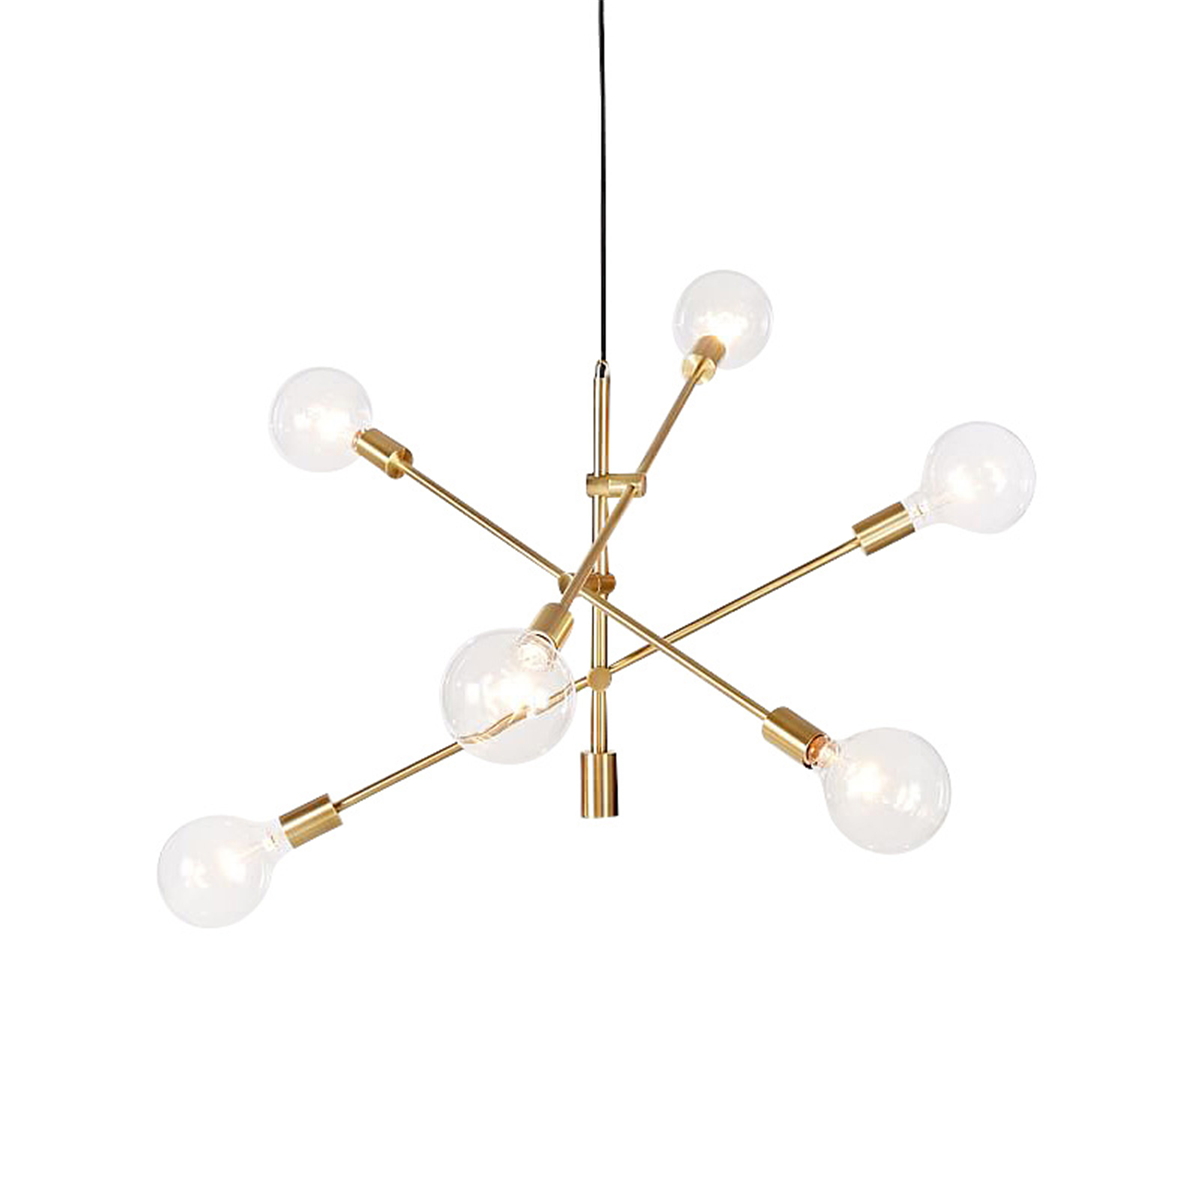 Modern Chandeliers 6 Lights Pendant Lamp Metal